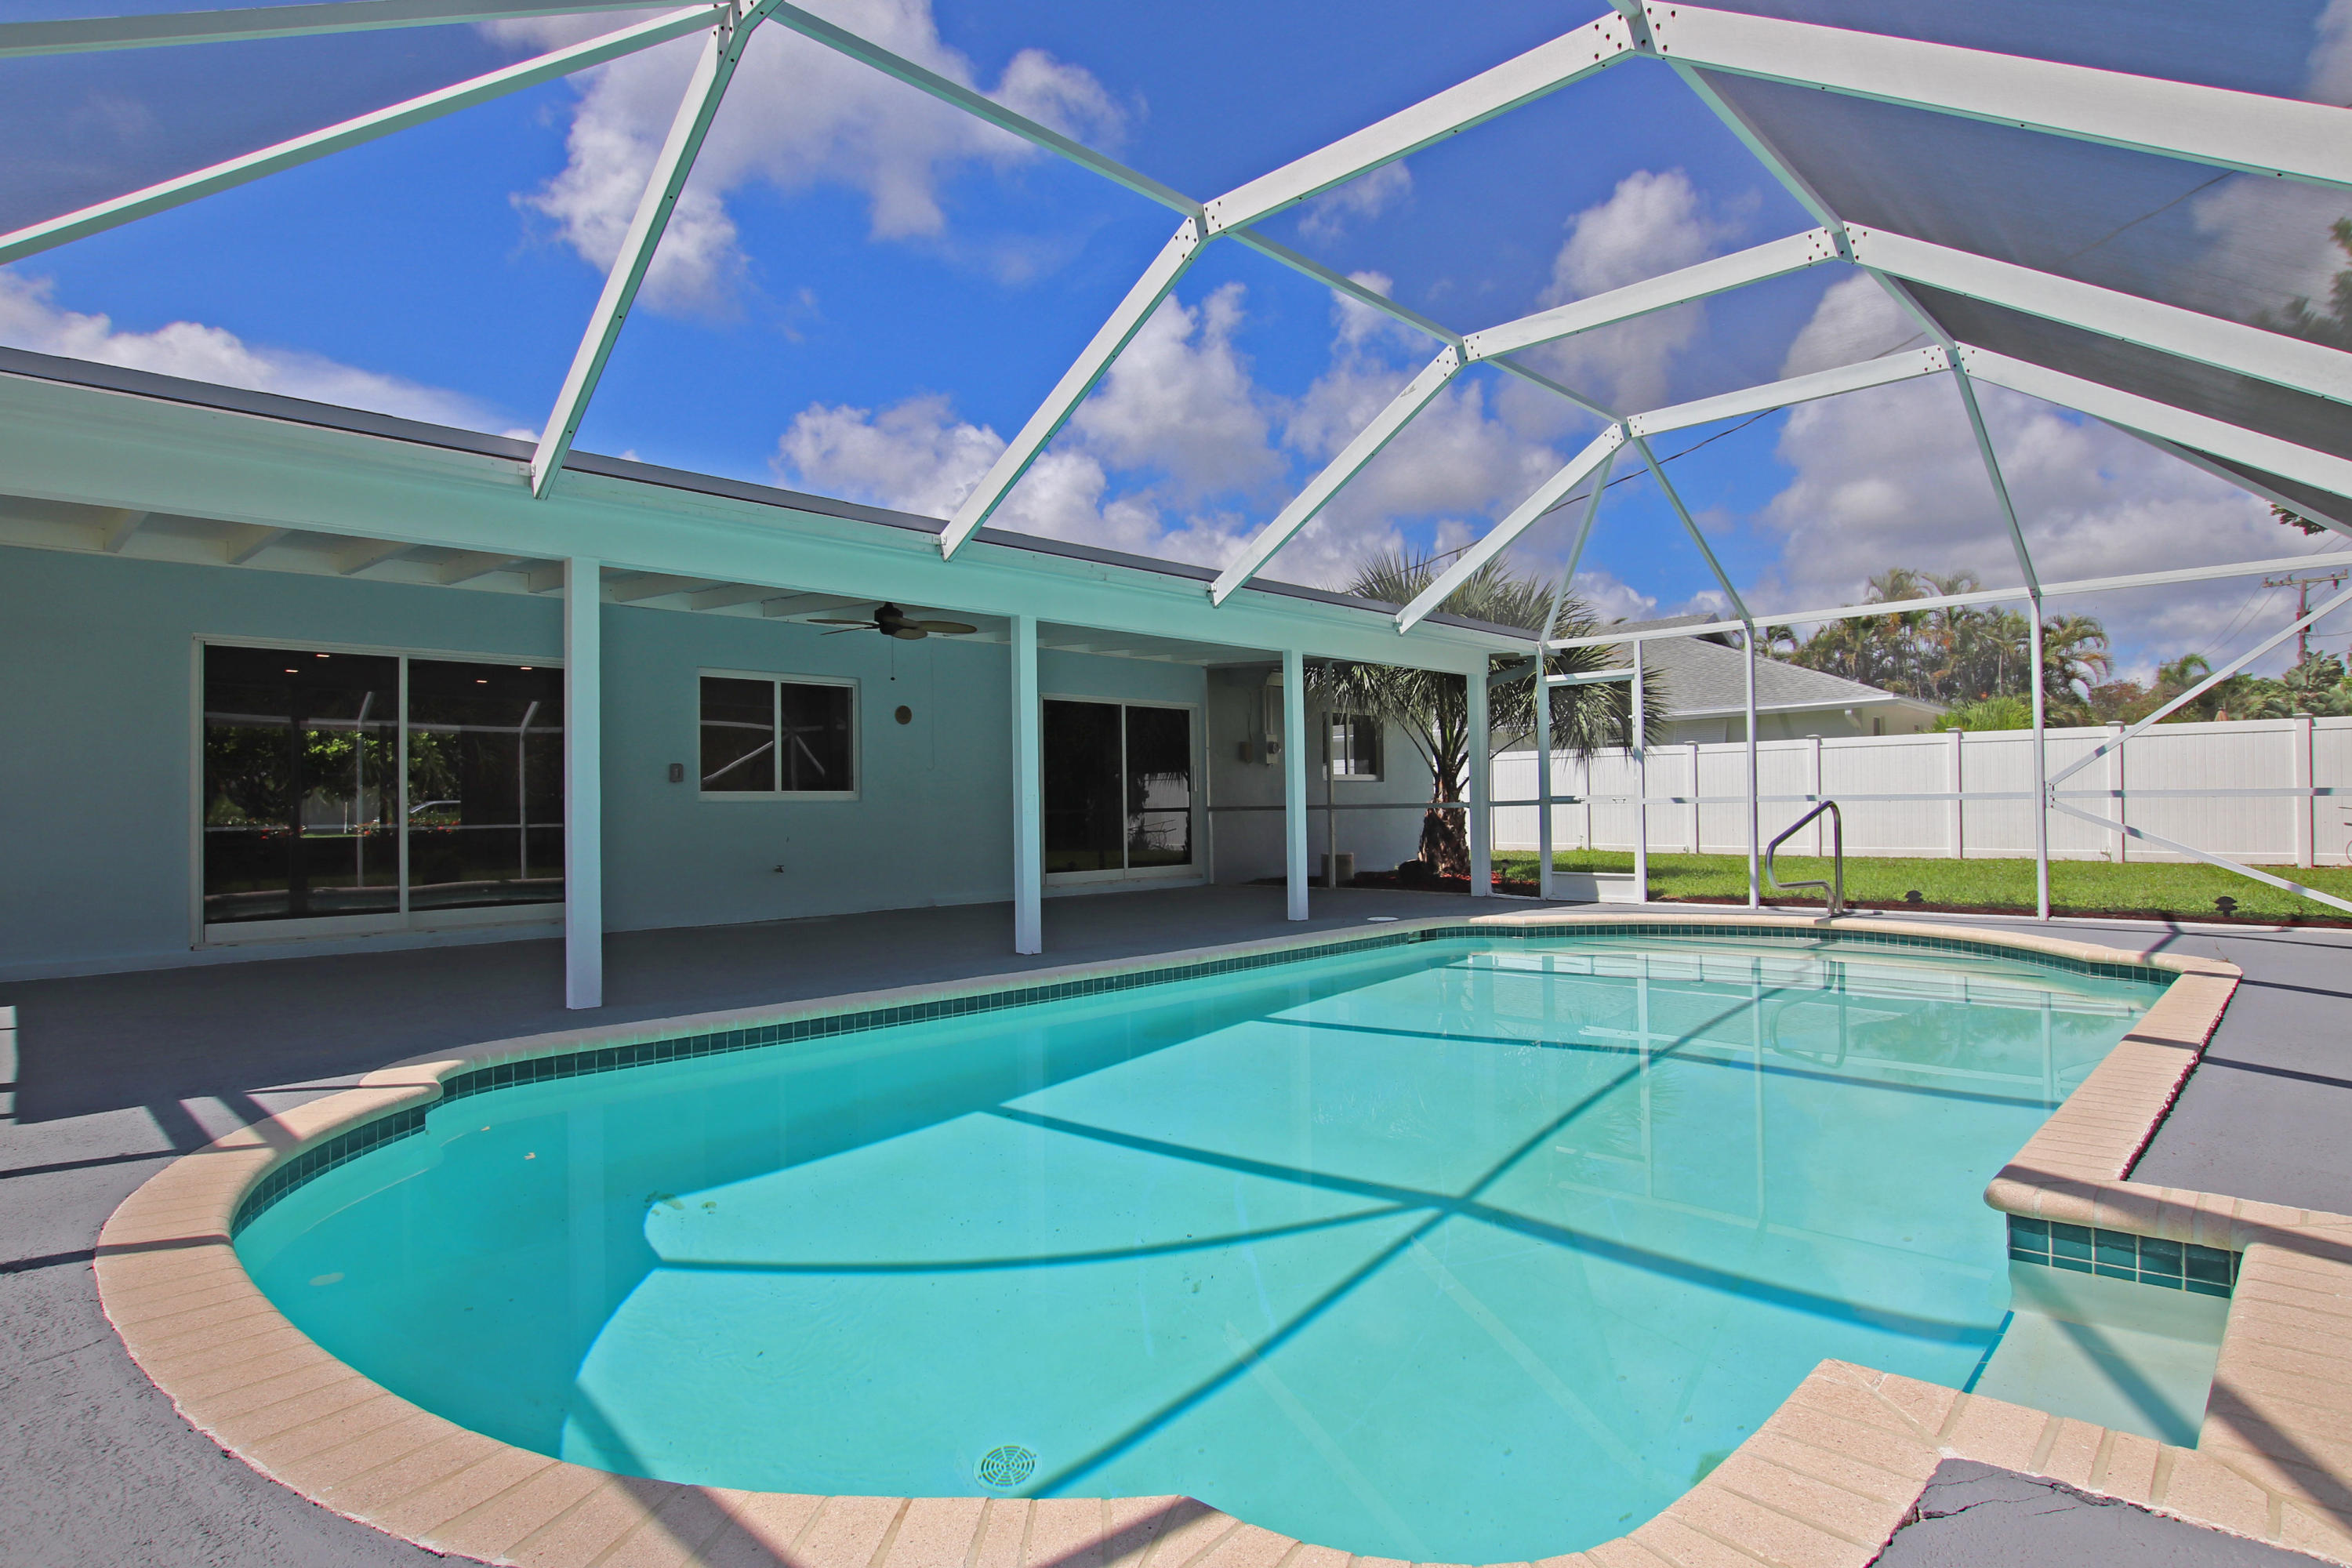 278 Country Club Drive, Tequesta, Florida 33469, 3 Bedrooms Bedrooms, ,2 BathroomsBathrooms,A,Single family,Country Club,RX-10460004